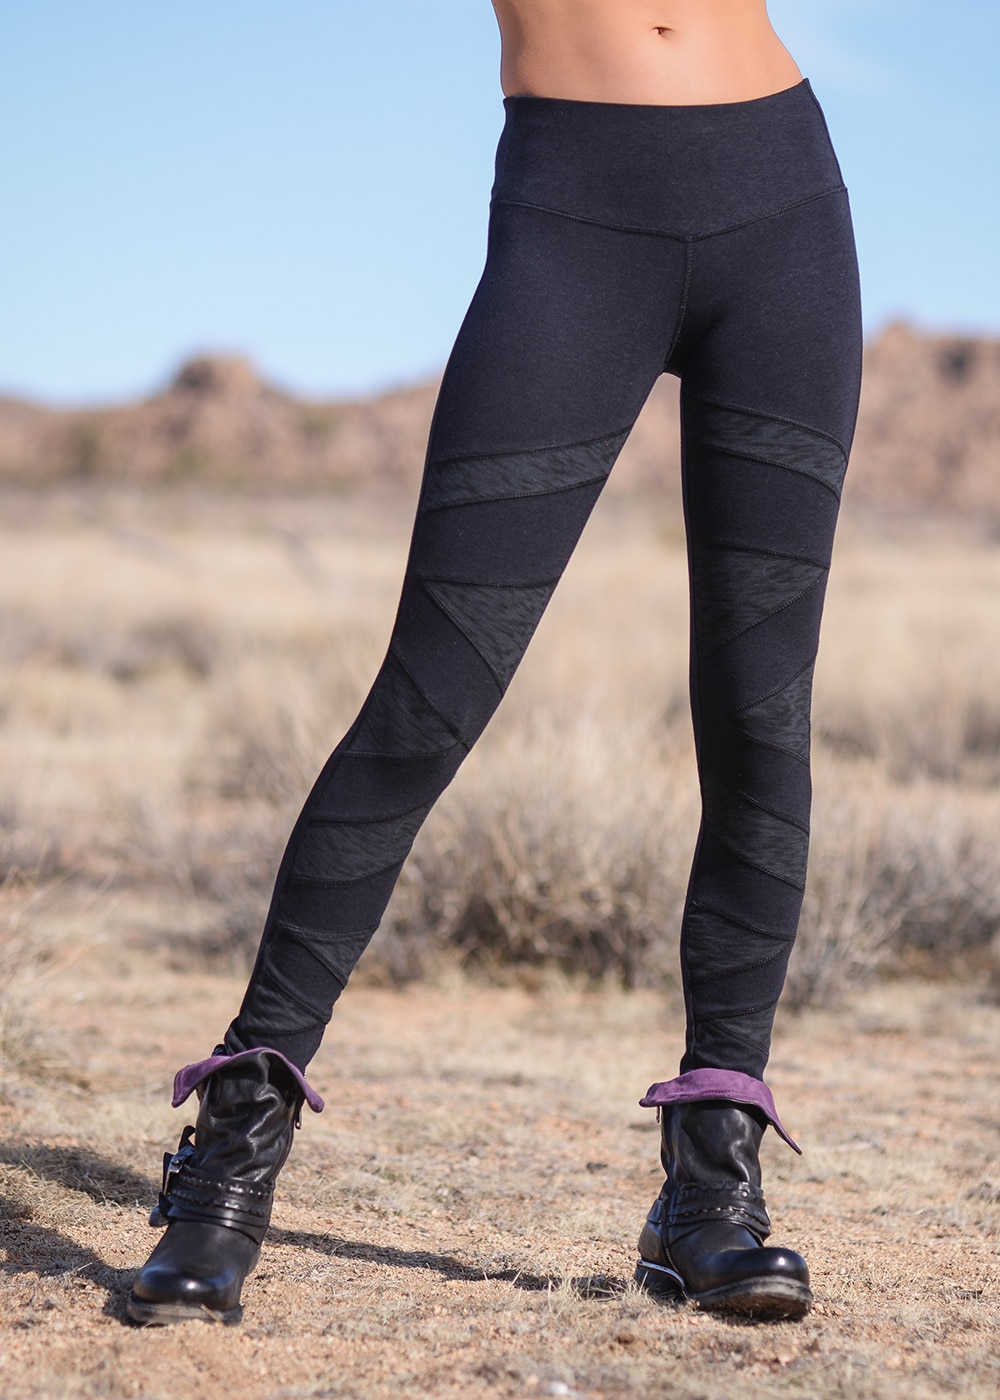 Bamboo and Organic Cotton Polygon Leggings in Black by Nomads Hemp Wear